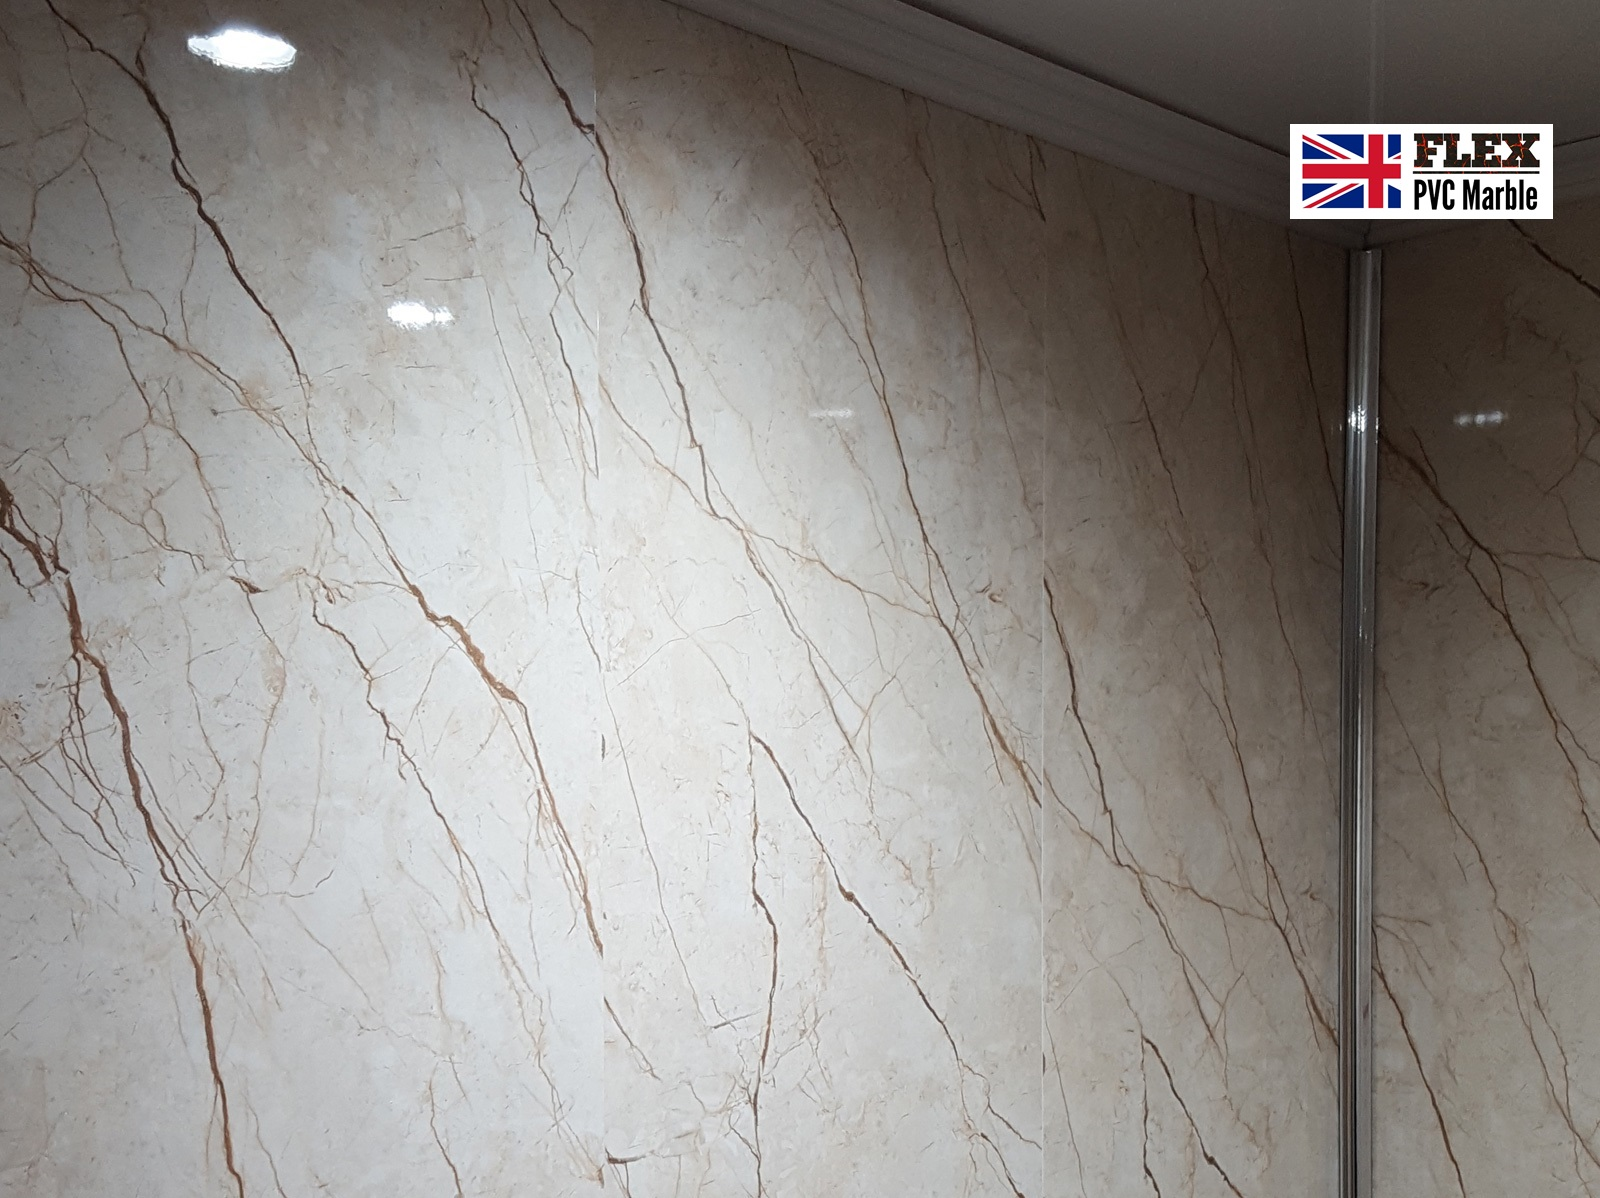 Bathroom wall FLEX-UV-Pvc-Marble